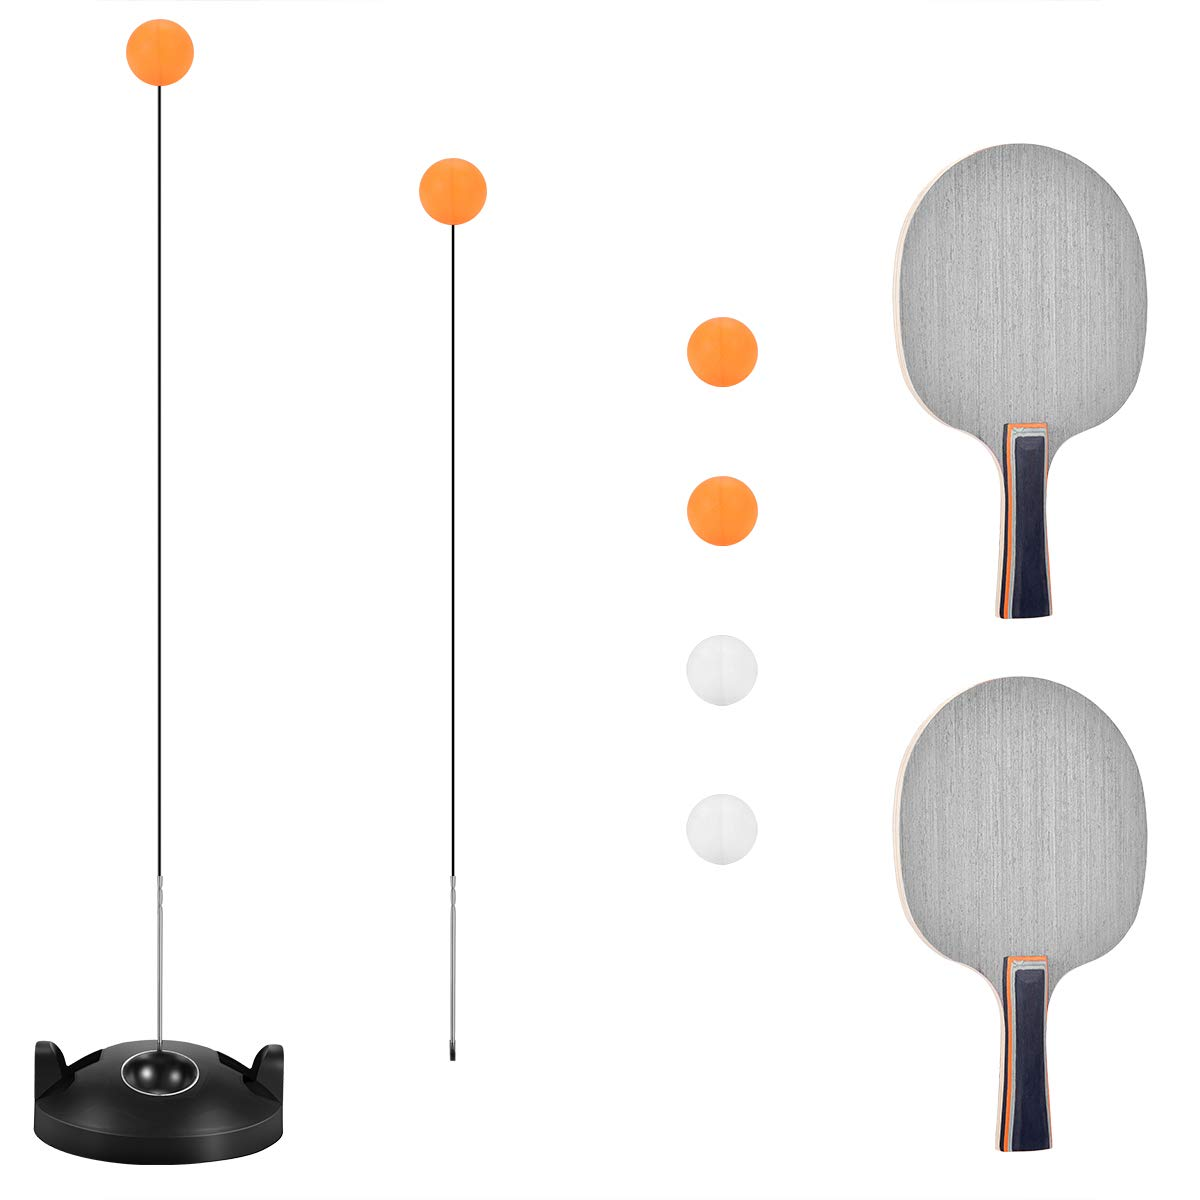 Table Tennis Trainer with Elastic Soft Shaft, Leisure Decompression Sports 2 Table Tennis Paddle & 4 Ping Pong Balls, Set Table Tennis Trainer Indoor or Outdoor Play by PaulGolf